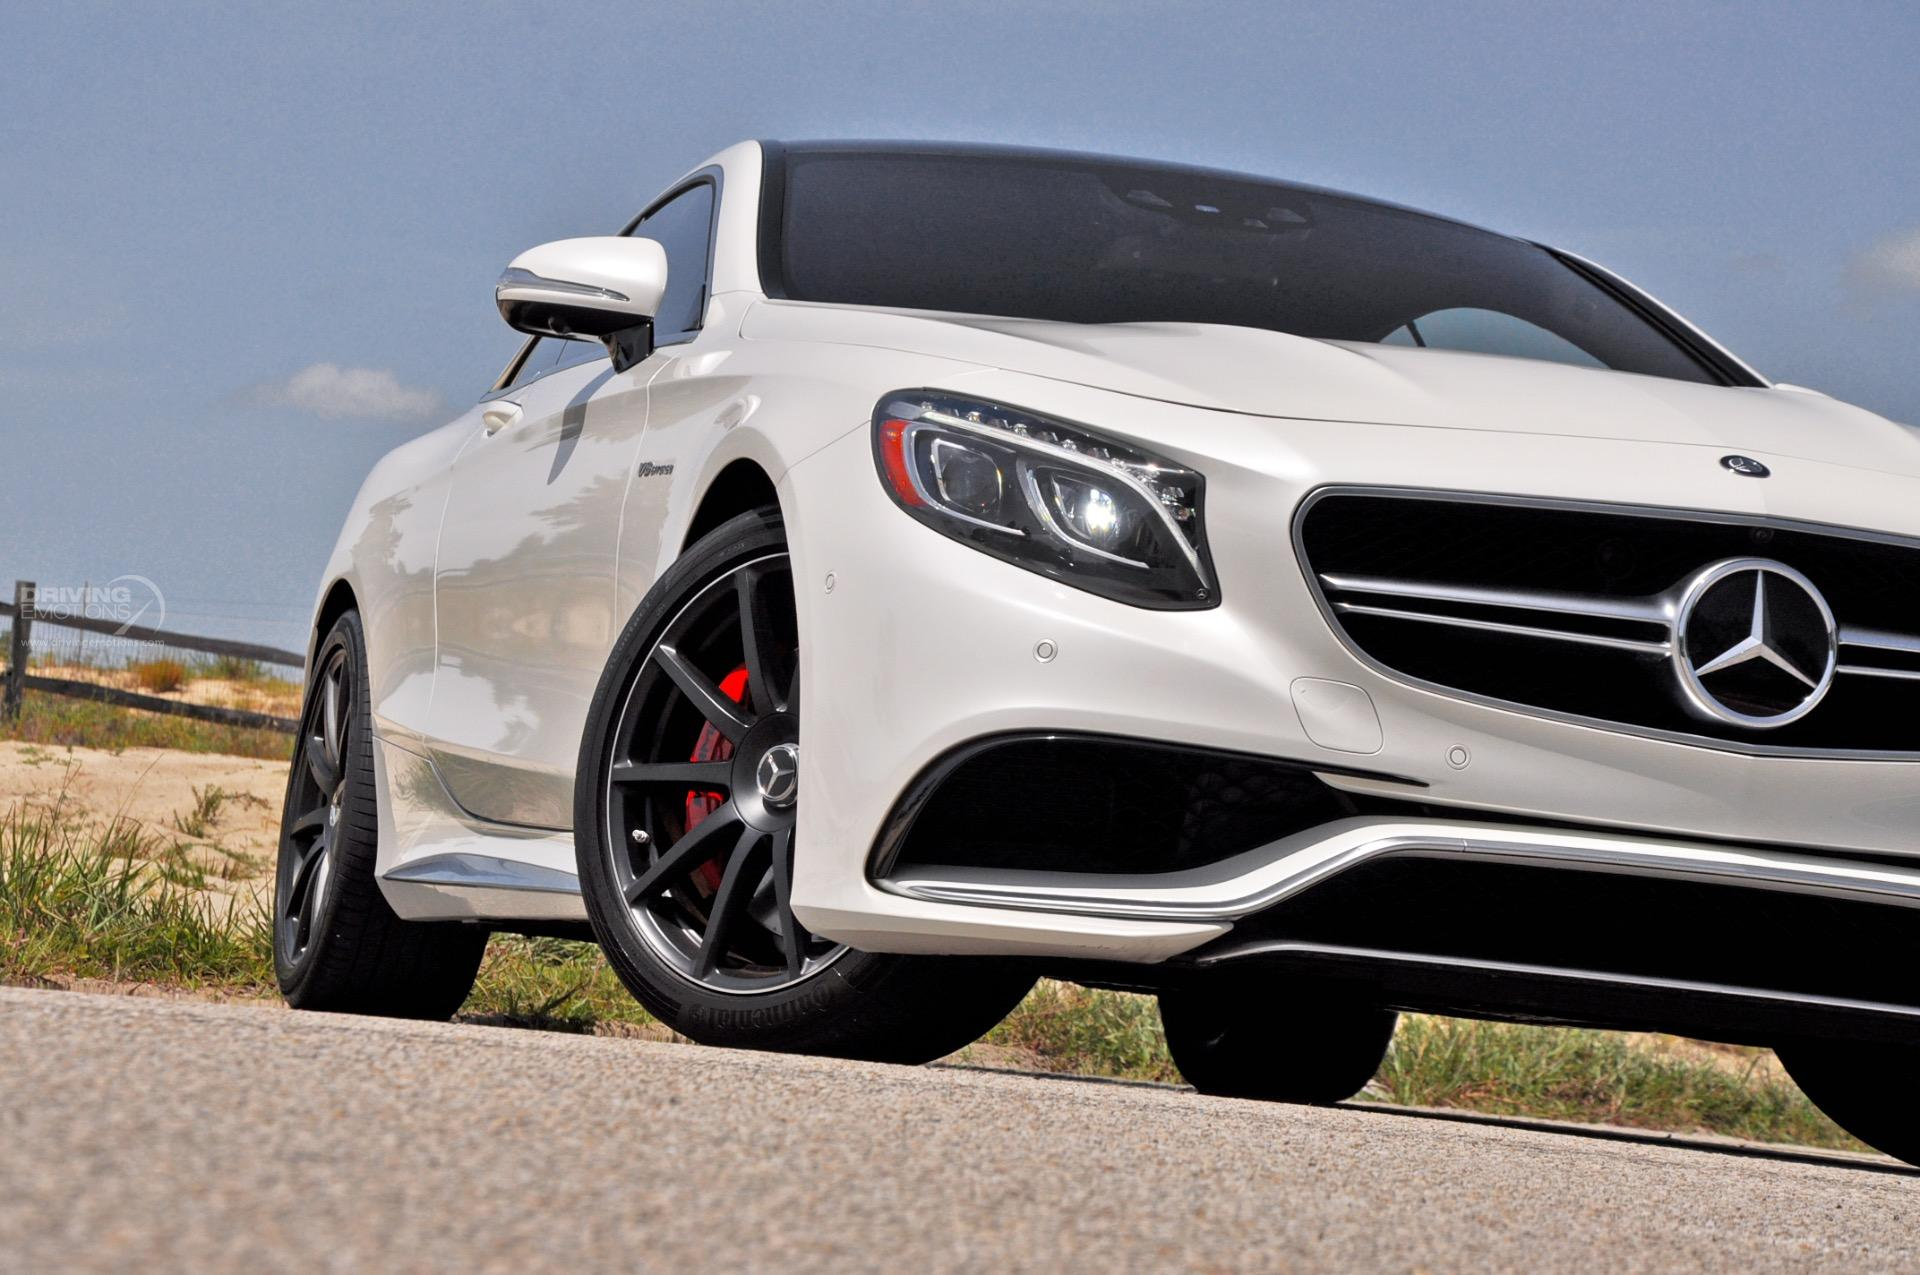 2015 mercedes benz s63 amg 4matic coupe s63 amg driving emotions palm bea. Cars Review. Best American Auto & Cars Review